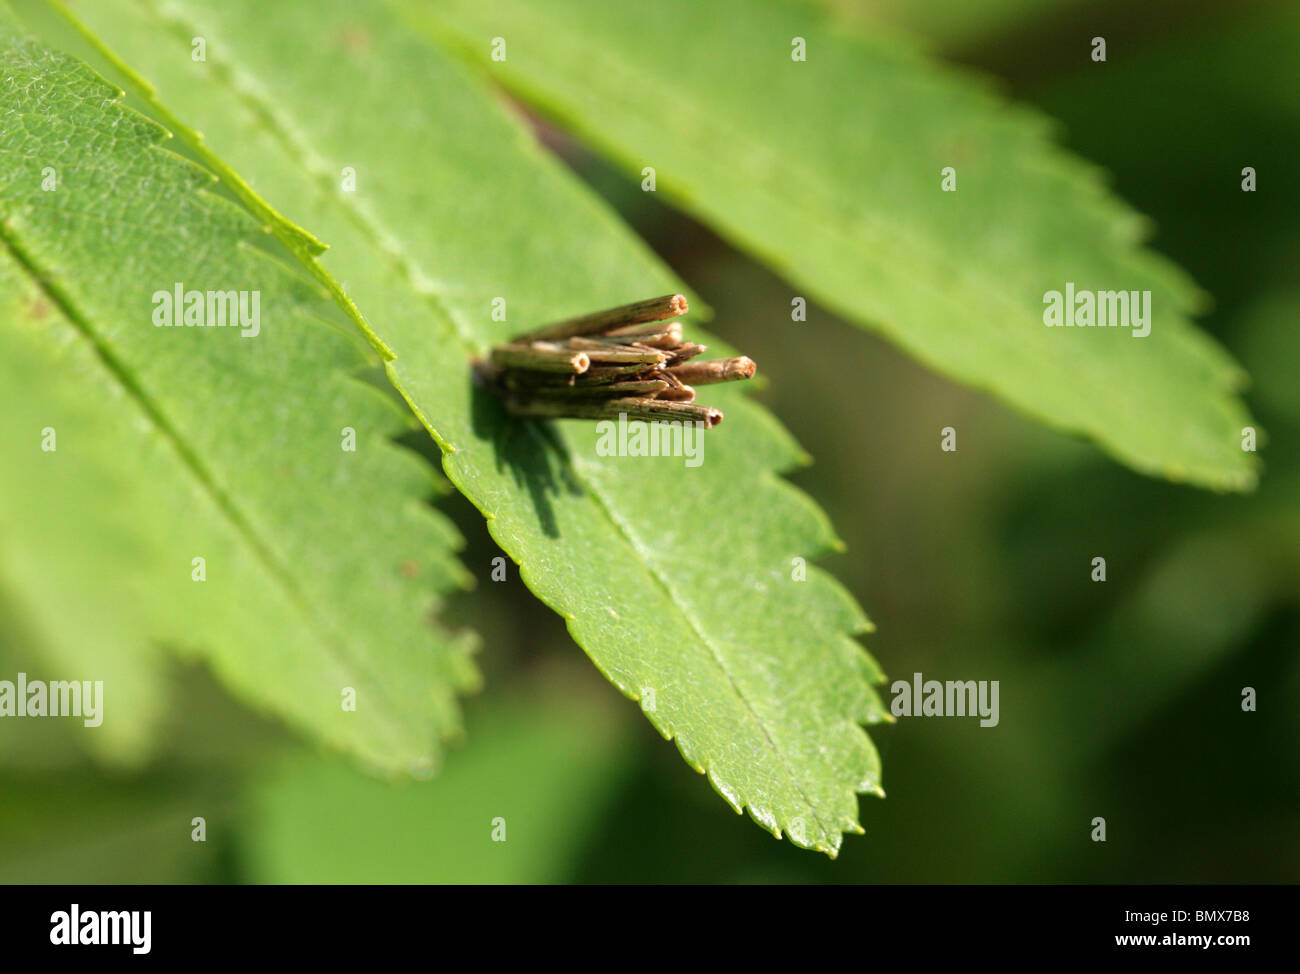 Psyche Stock Photos & Psyche Stock Images - Alamy